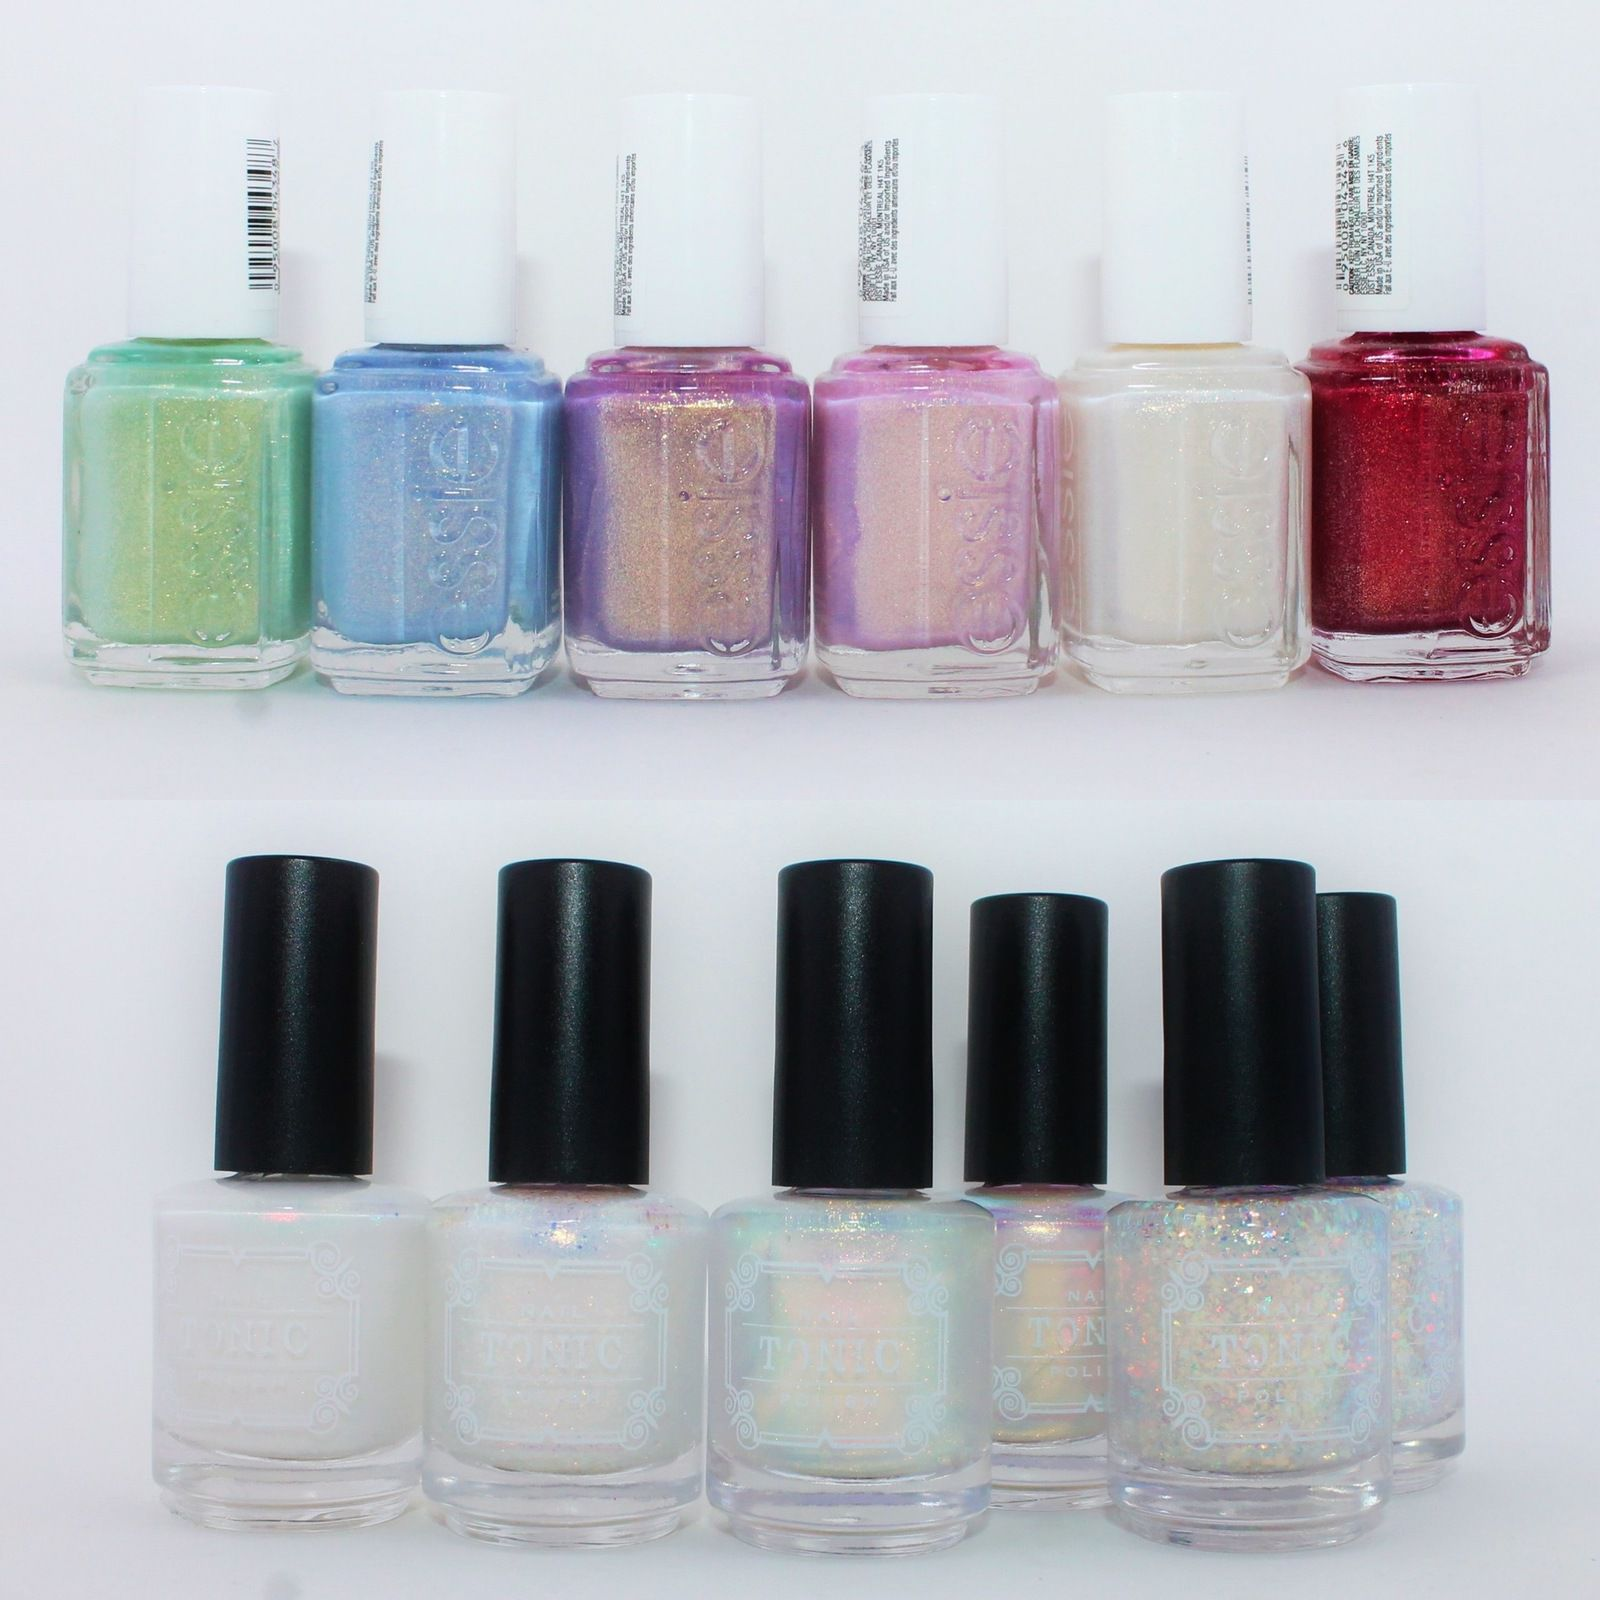 Essie Winter 2020 Collection  - Peppermint Condition, Love at Frost Sight, Sugarplum Fairytale, Bonbon Nuit, Twinkle in Time, In a Gingersnap. Tonic Polish Unicorn, Nacred, My Little Rainbow (x2), Crush (x2).